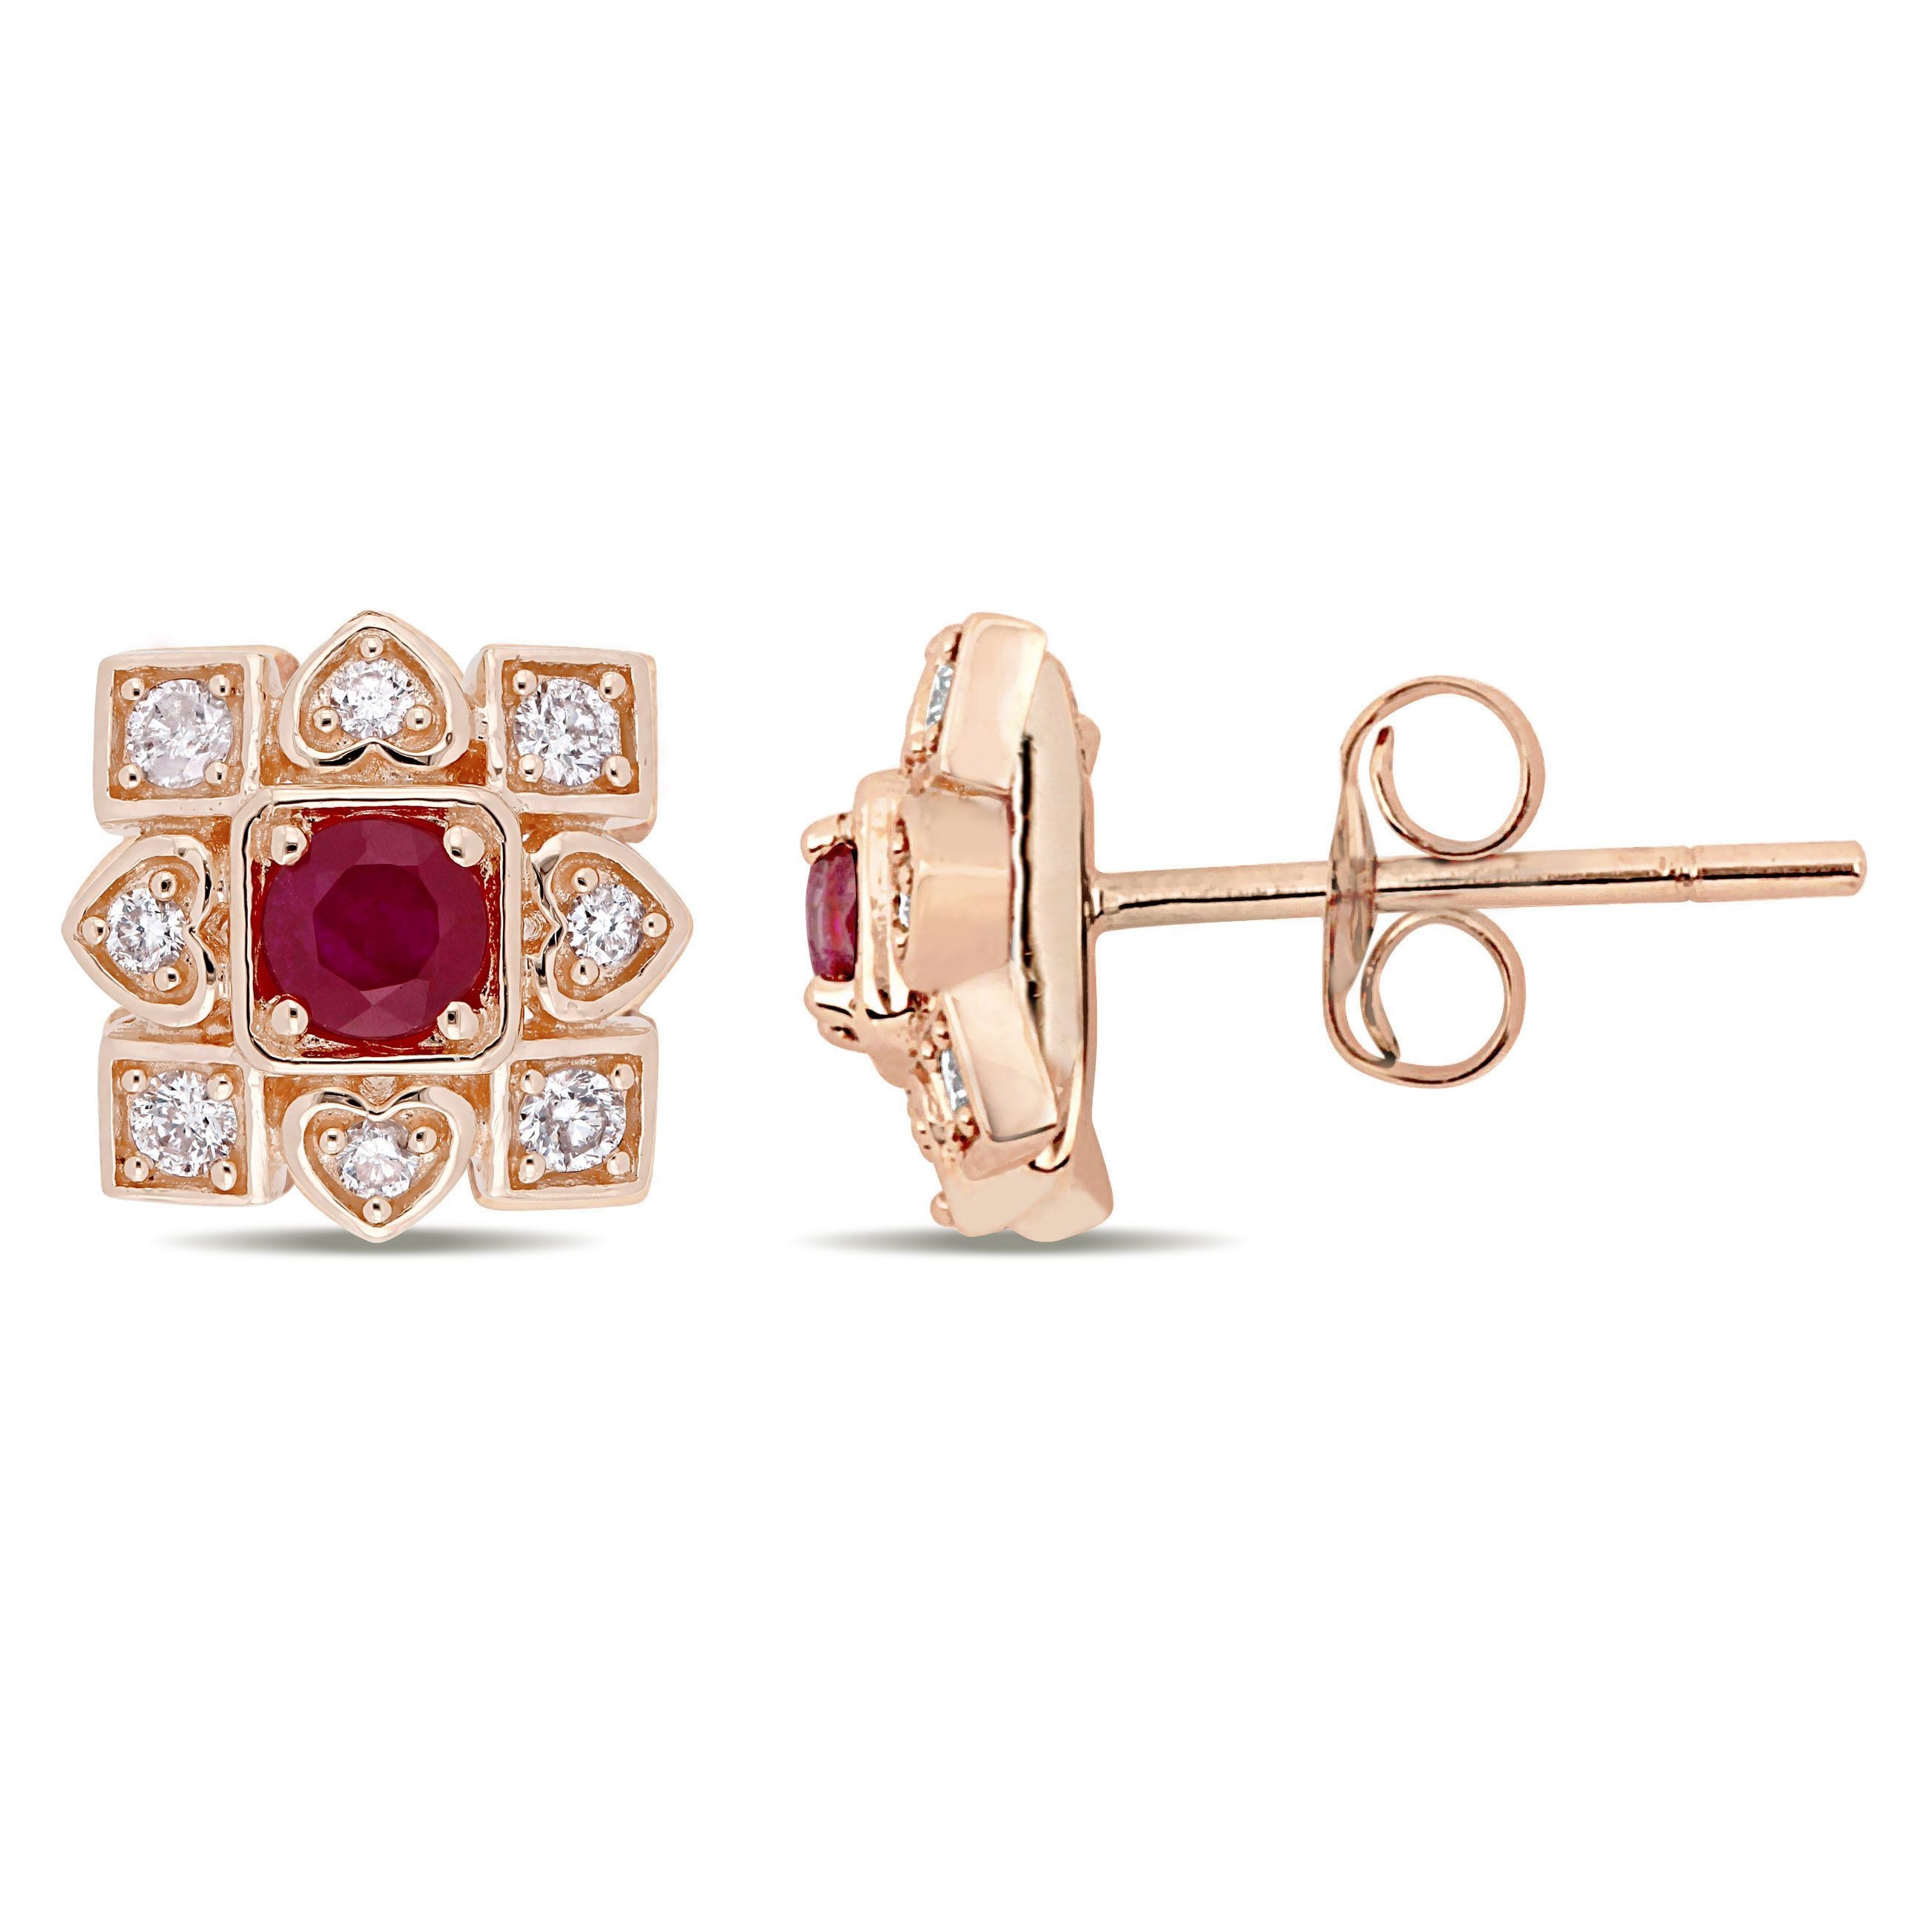 Everly Diamond Ruby Stud Earrings In 10k Rose Gold Ruby Earrings Studs Stud Earrings Diamond Earrings Studs